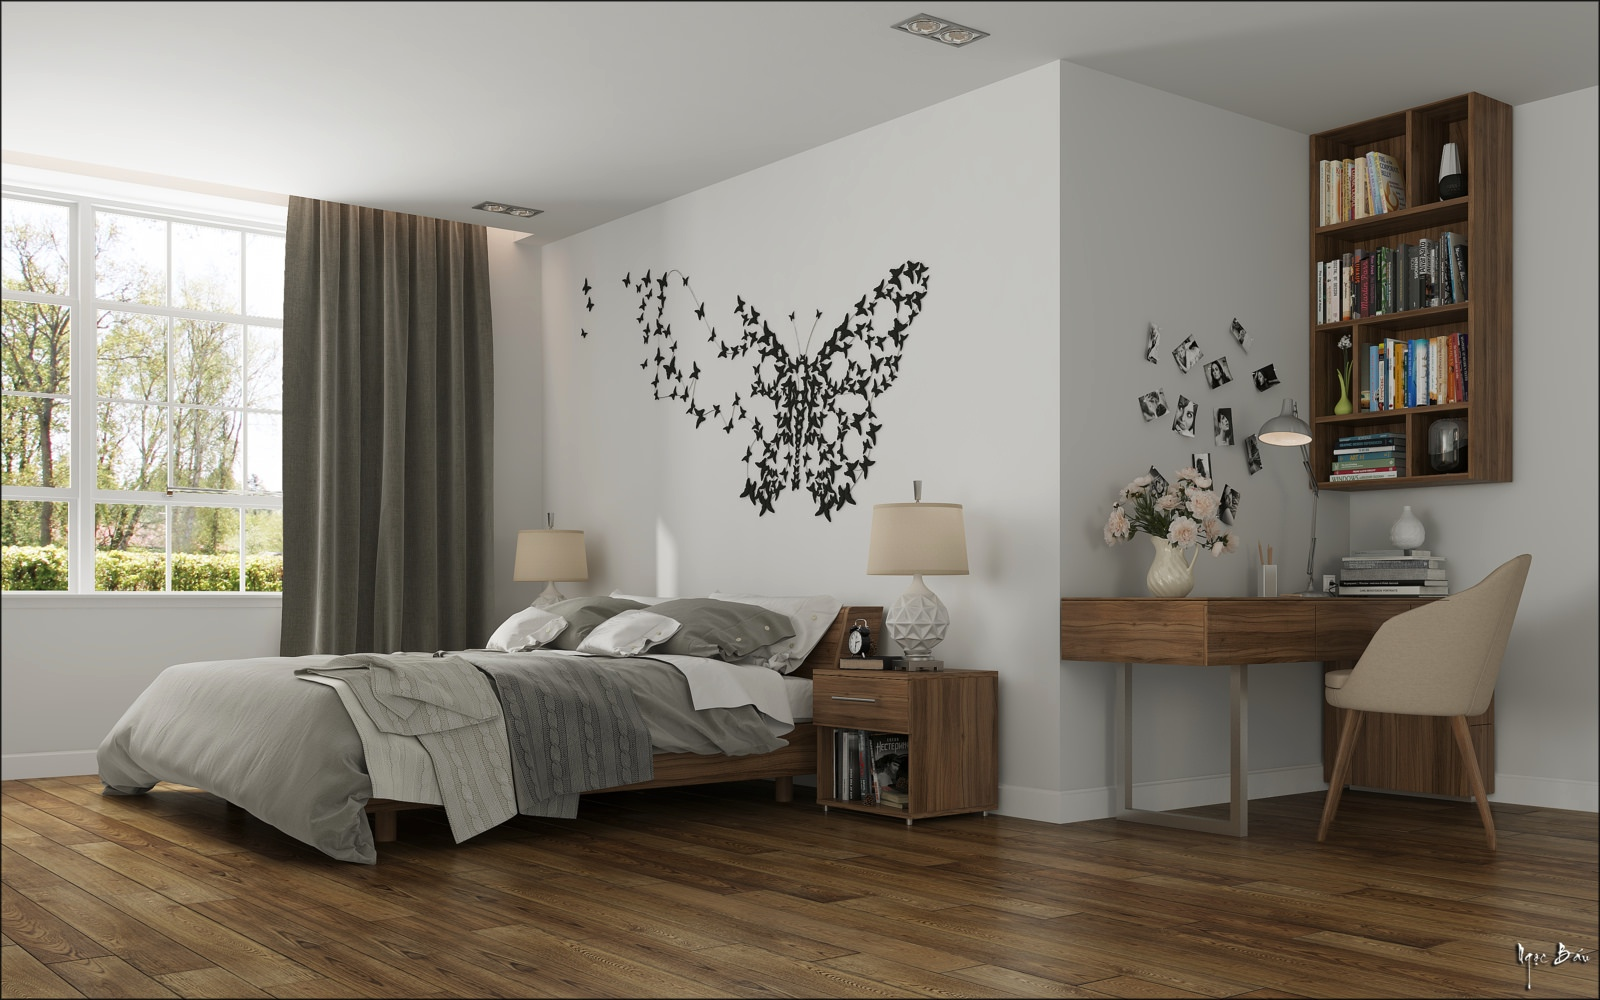 Bedroom butterfly wall art interior design ideas - Amenagement petite chambre adulte ...